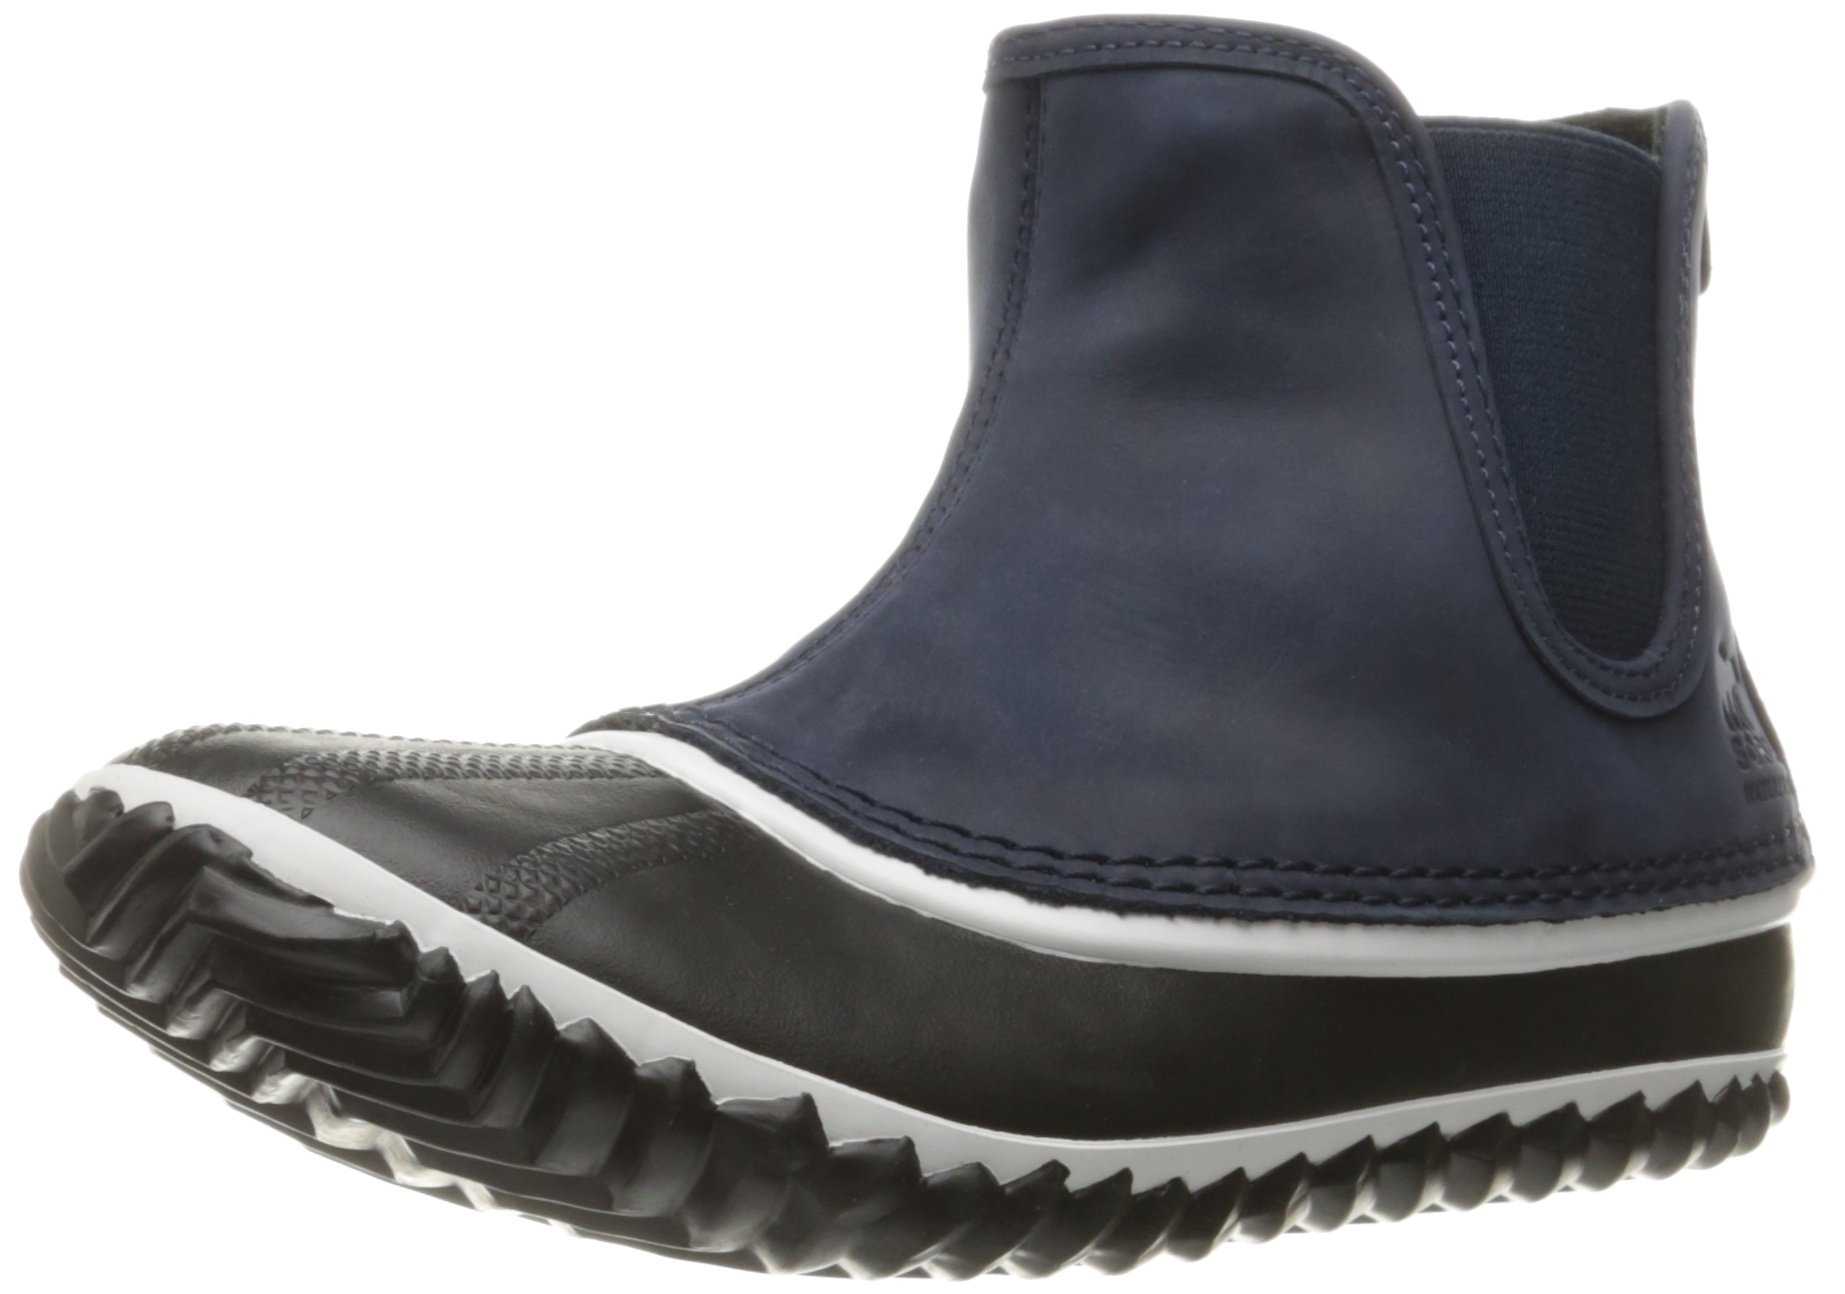 SOREL Women's Out N About Chelsea-W Cold Weather Boot, Collegiate Navy, 6.5 B US